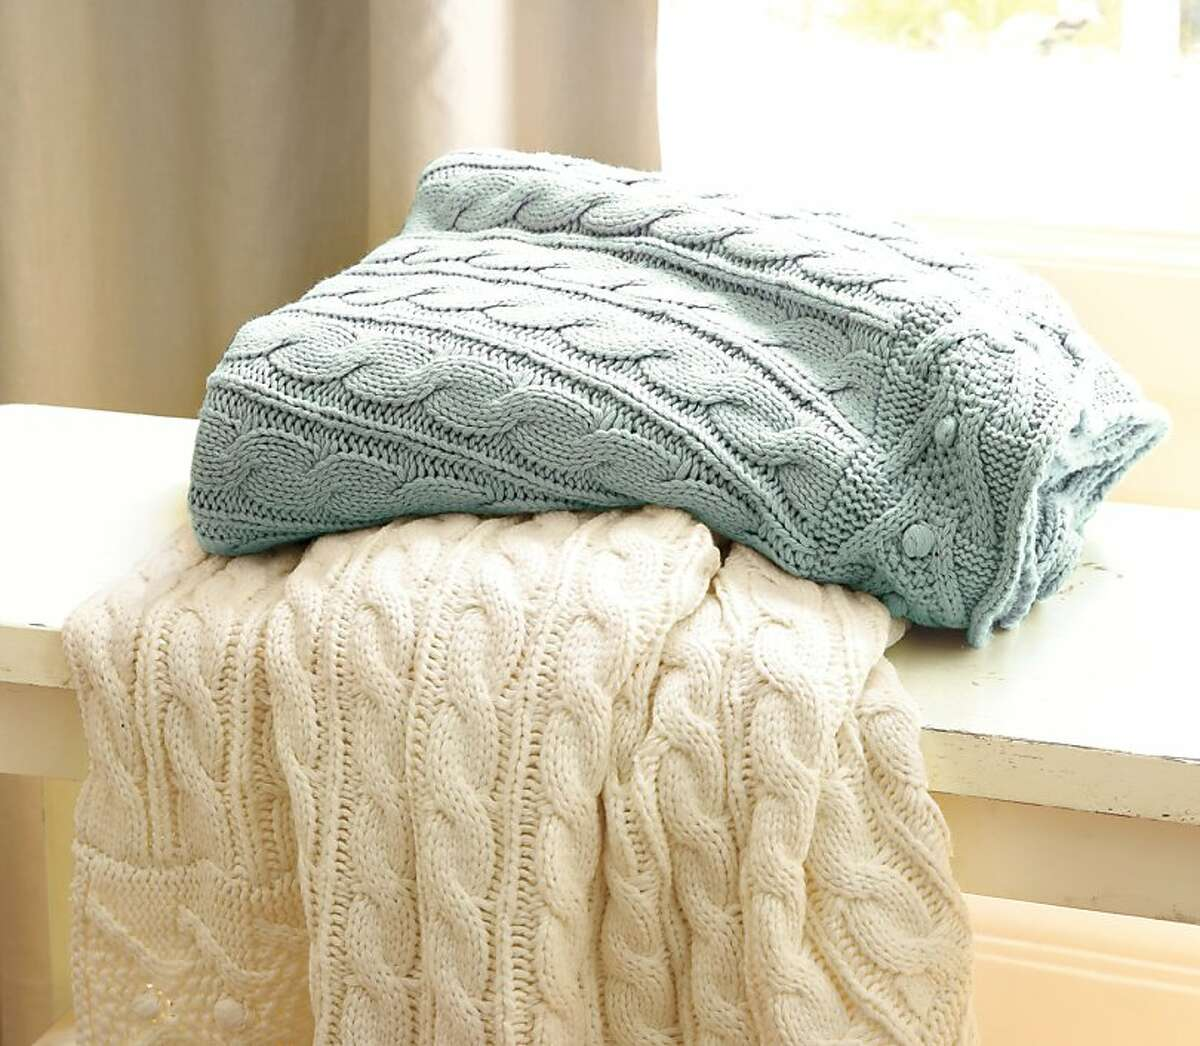 Less: $79 Cable-Knit Throw from Pottery Barn (potterybarn.com)